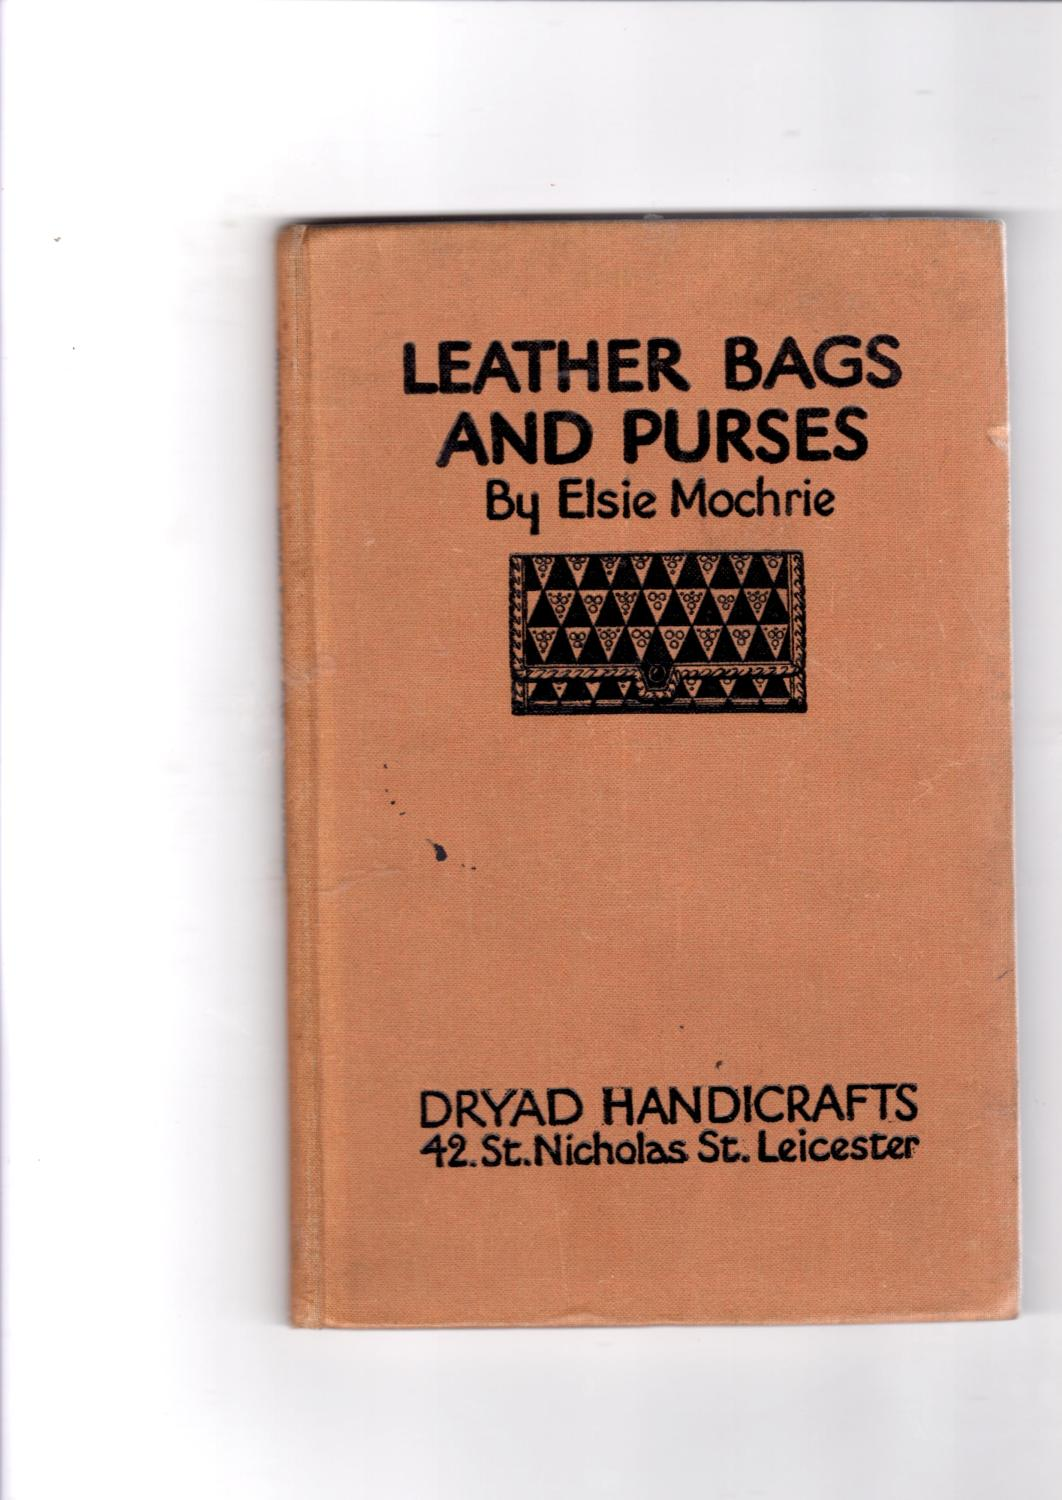 Leather bags and purses Elsie Mochrie [Very Good] [Hardcover] (bi_22879171871) photo